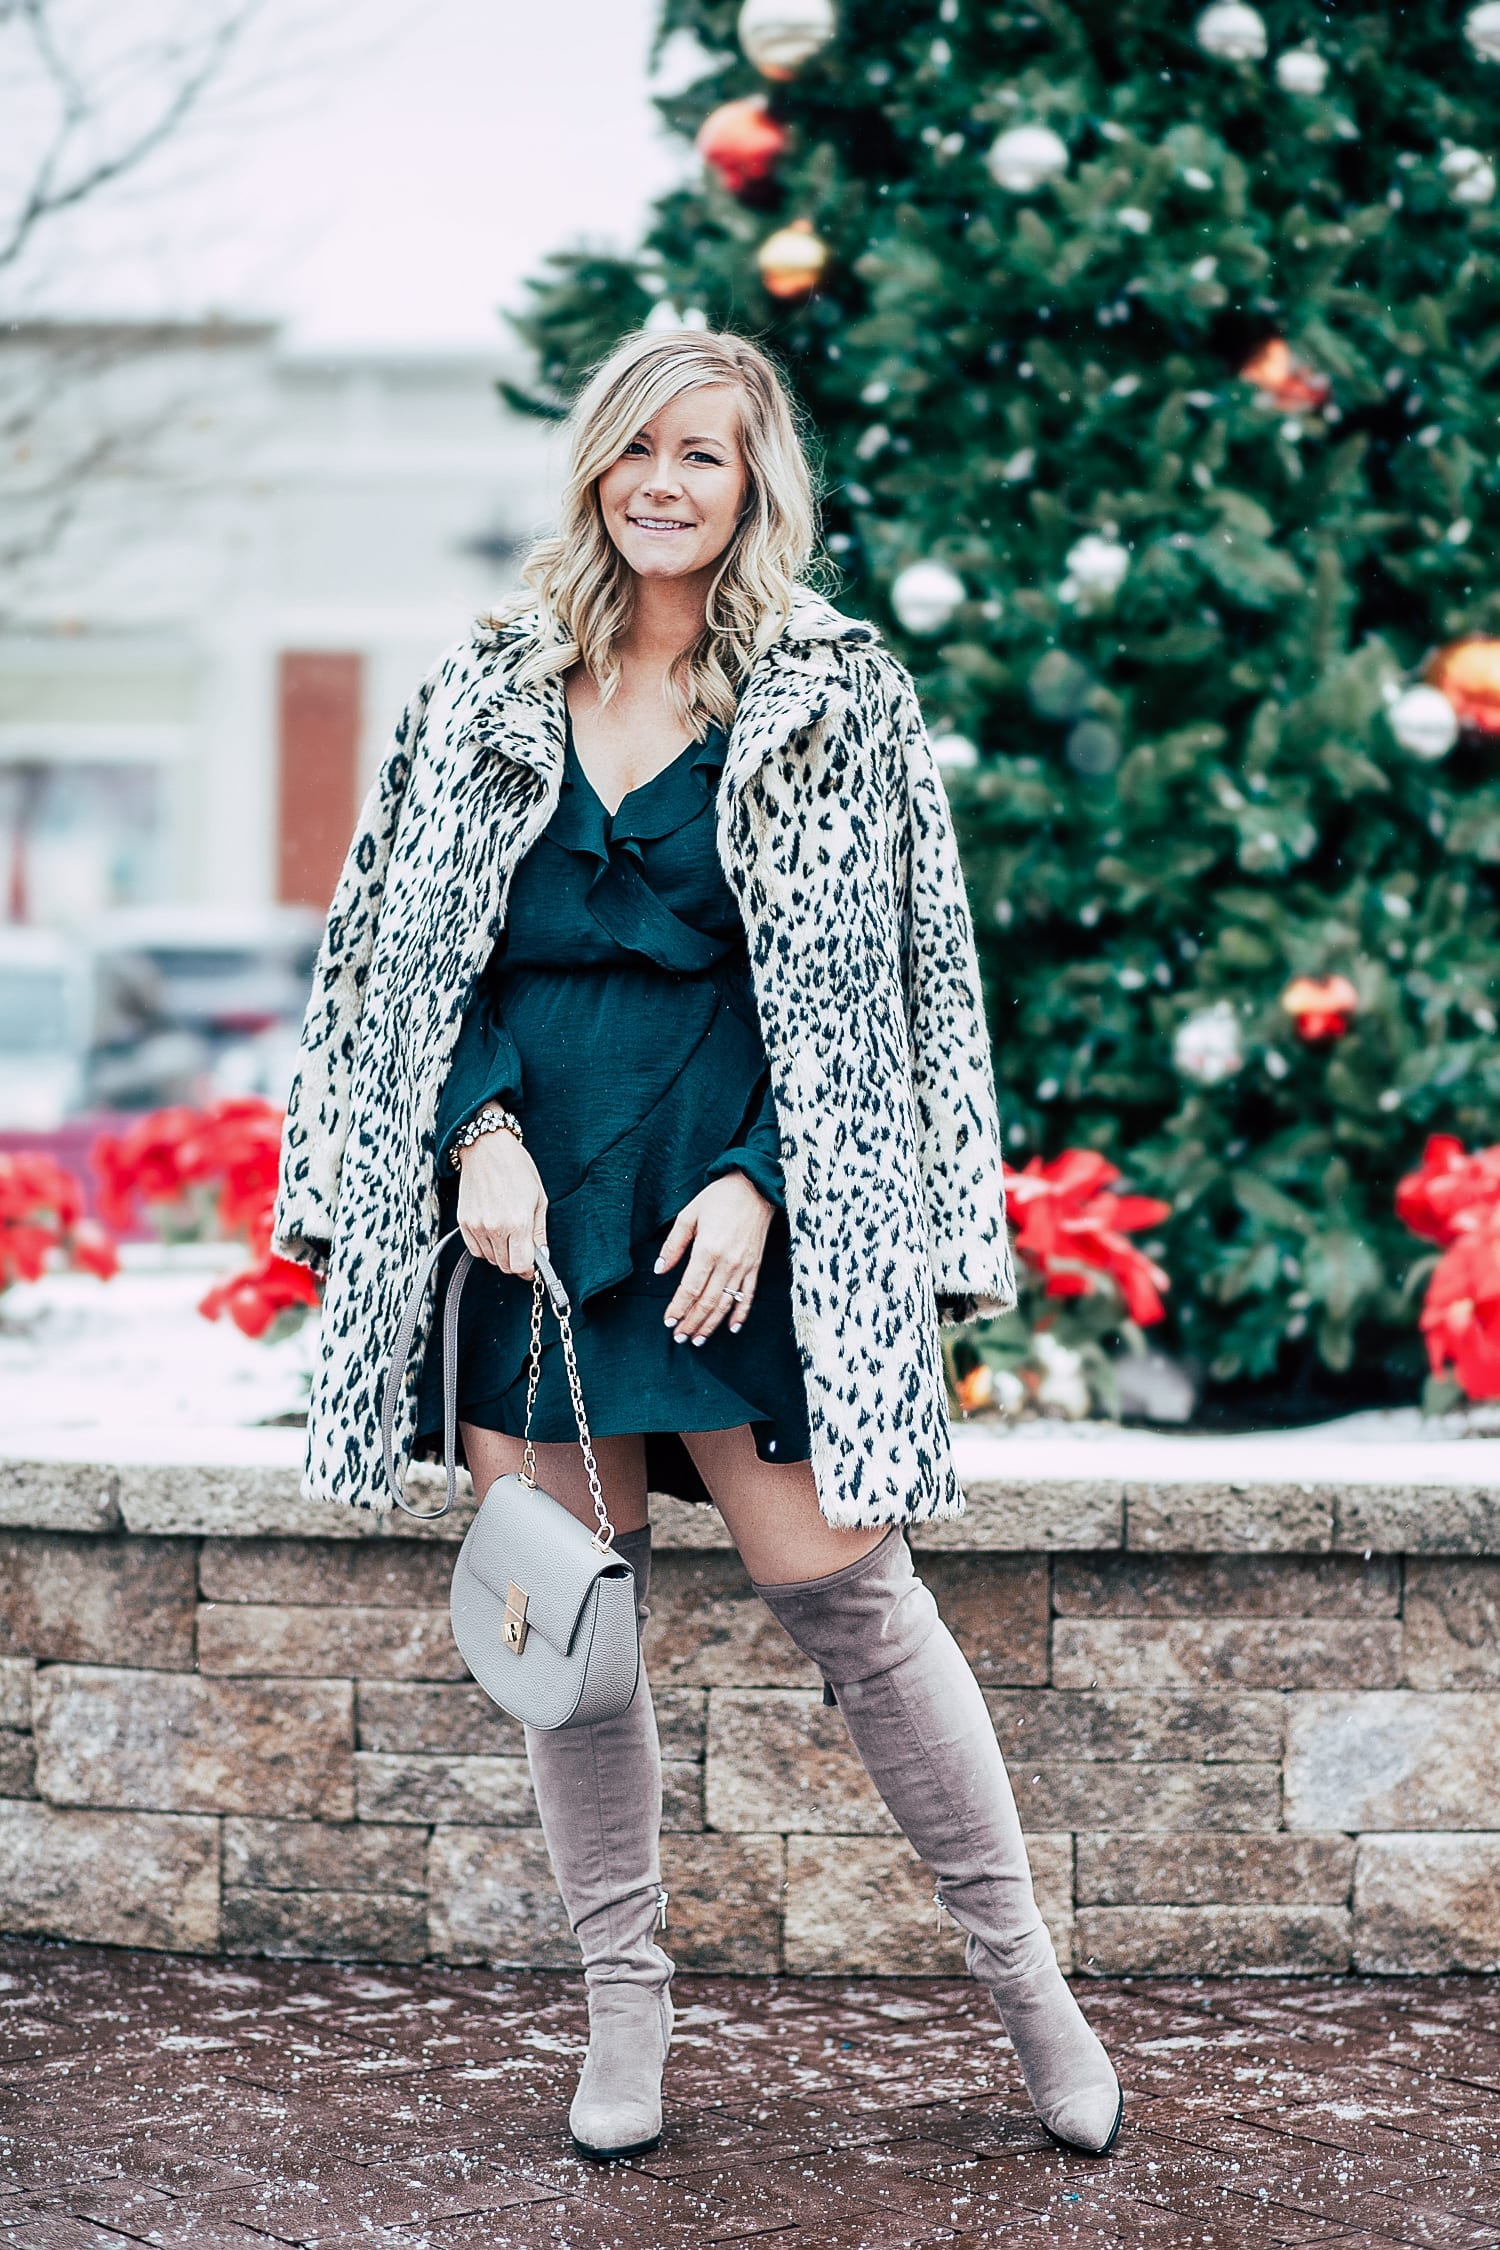 The Perfect Holiday Dress + Day 11 Giveaway with 7 Charming Sisters!